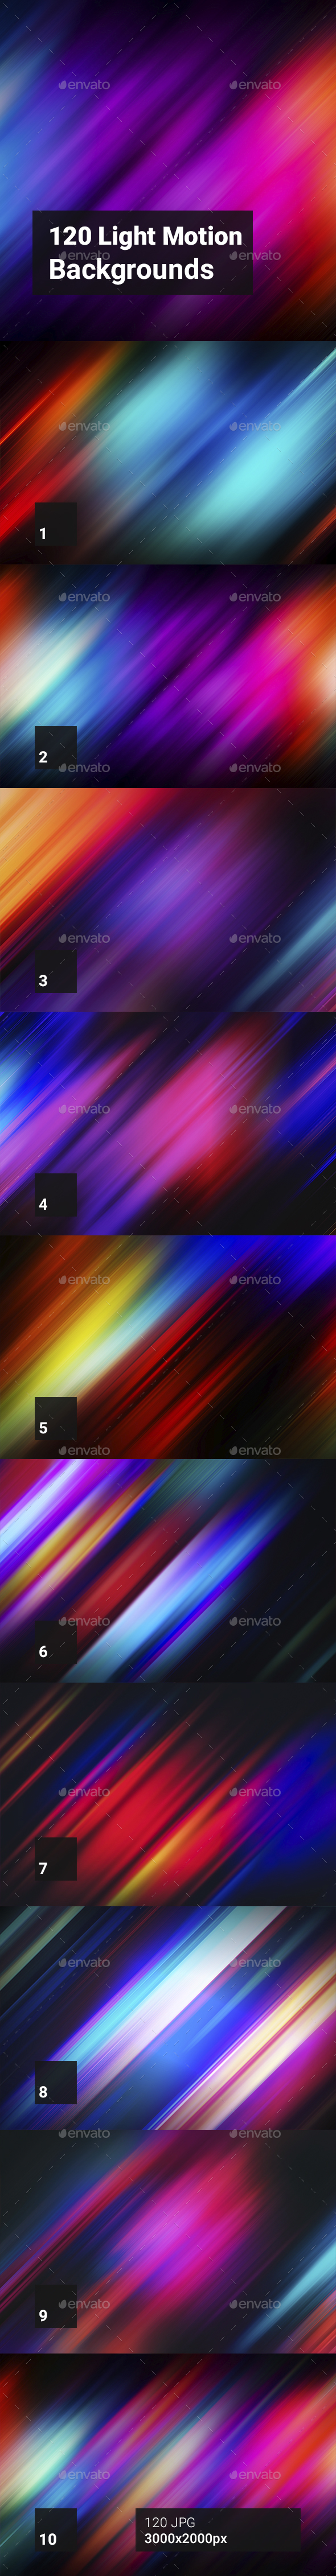 120 Light Motion Backgrounds - Abstract Backgrounds